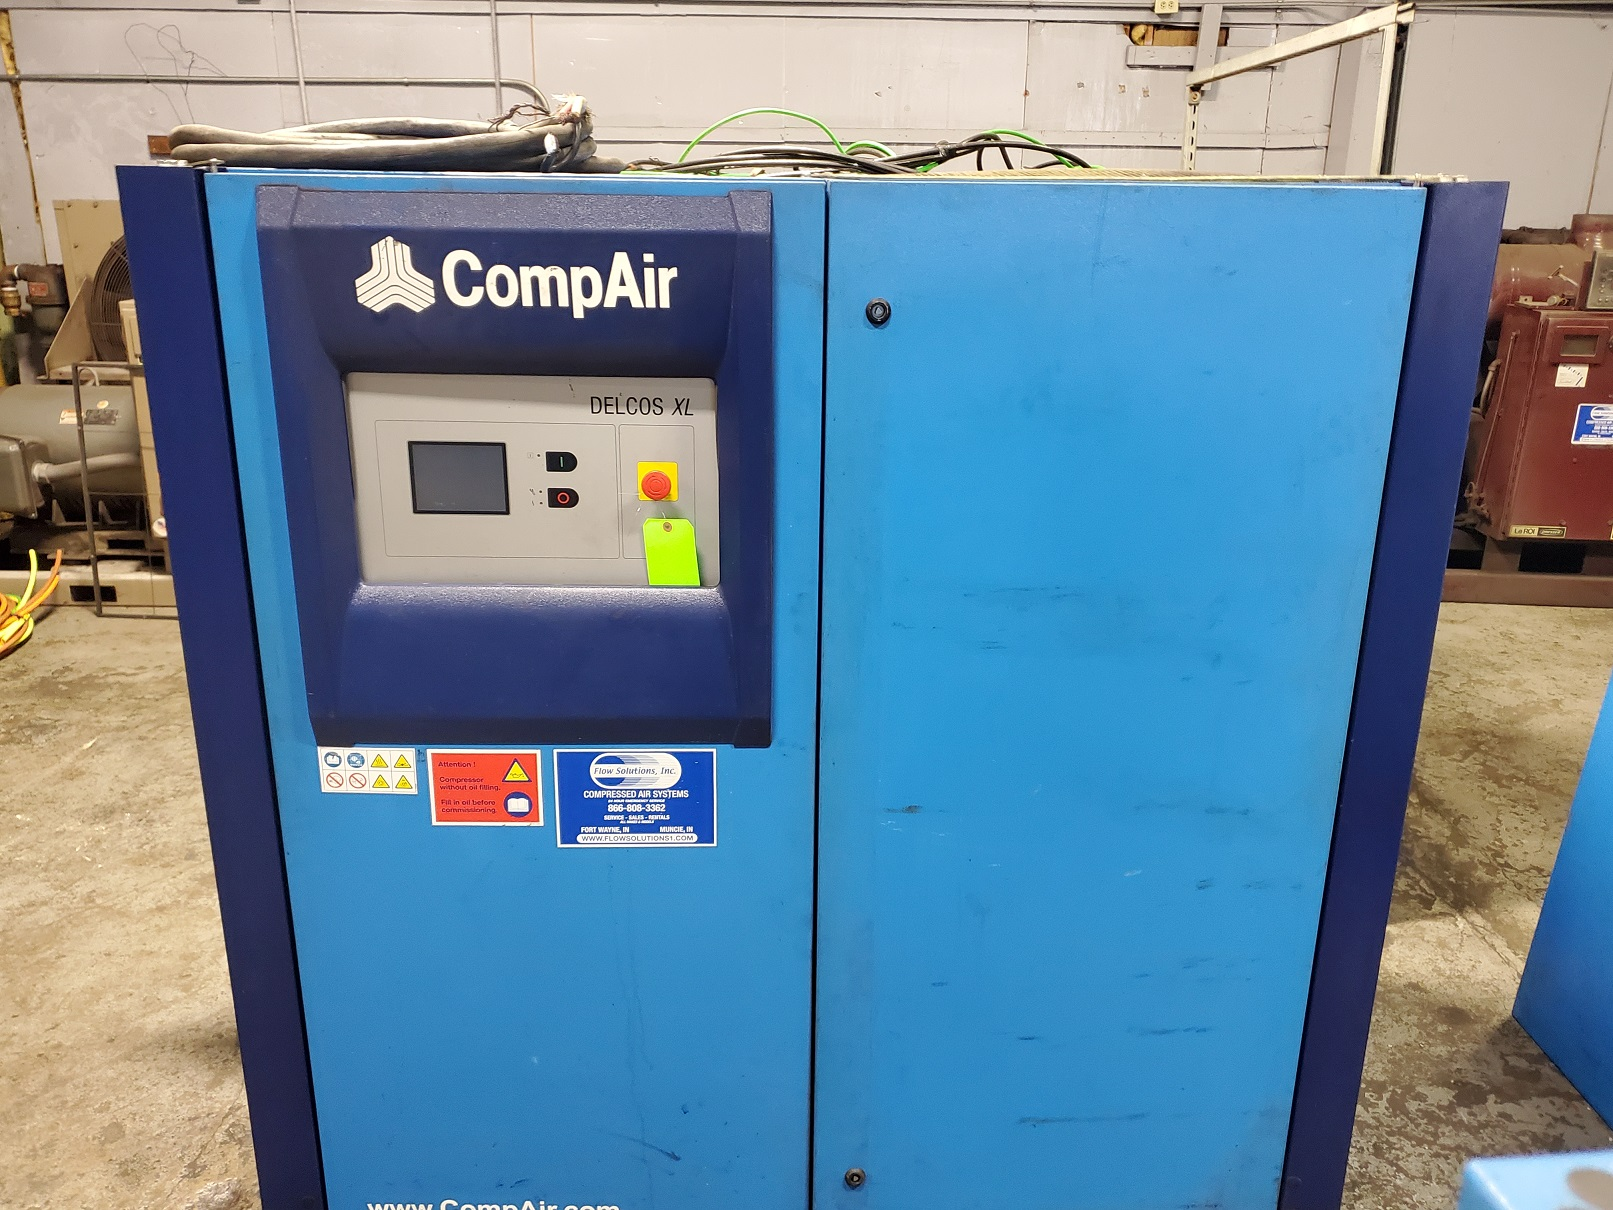 Compair XL Used Equipment Photo Flow Solutions